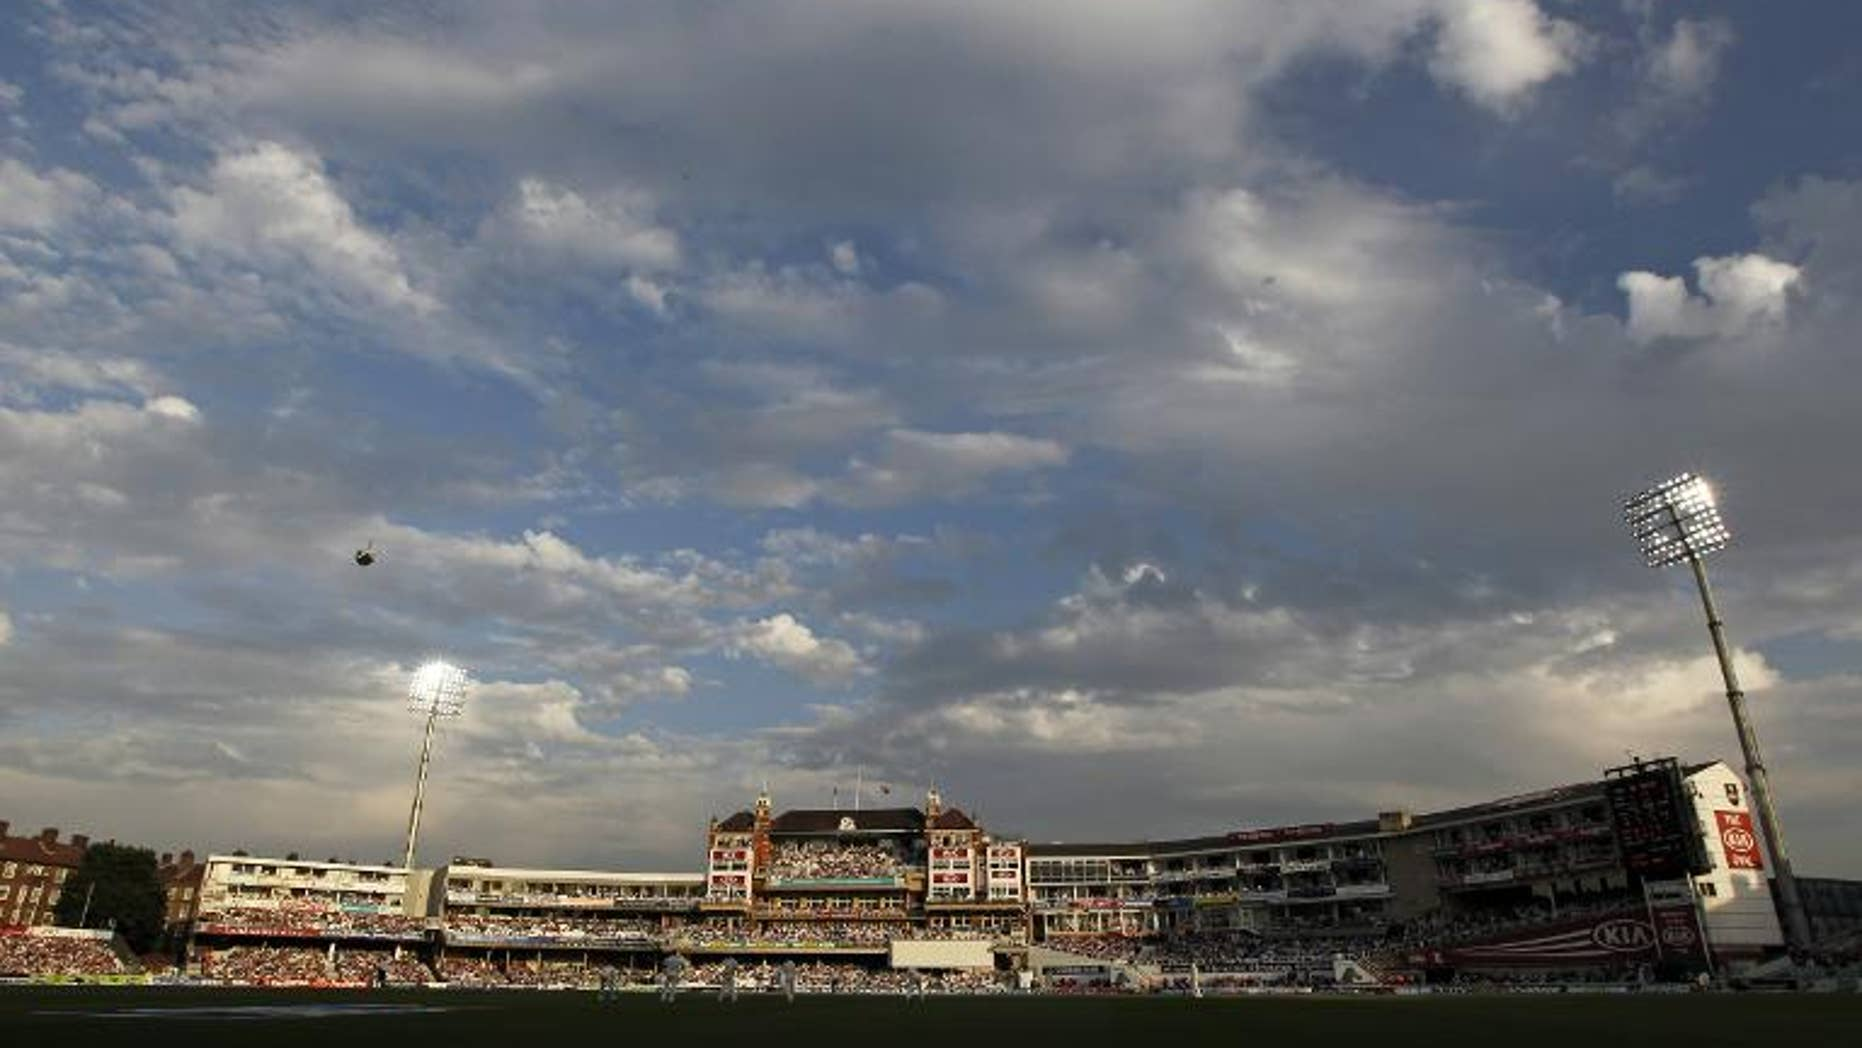 A general view of The Oval cricket ground in London on August 22, 2013.